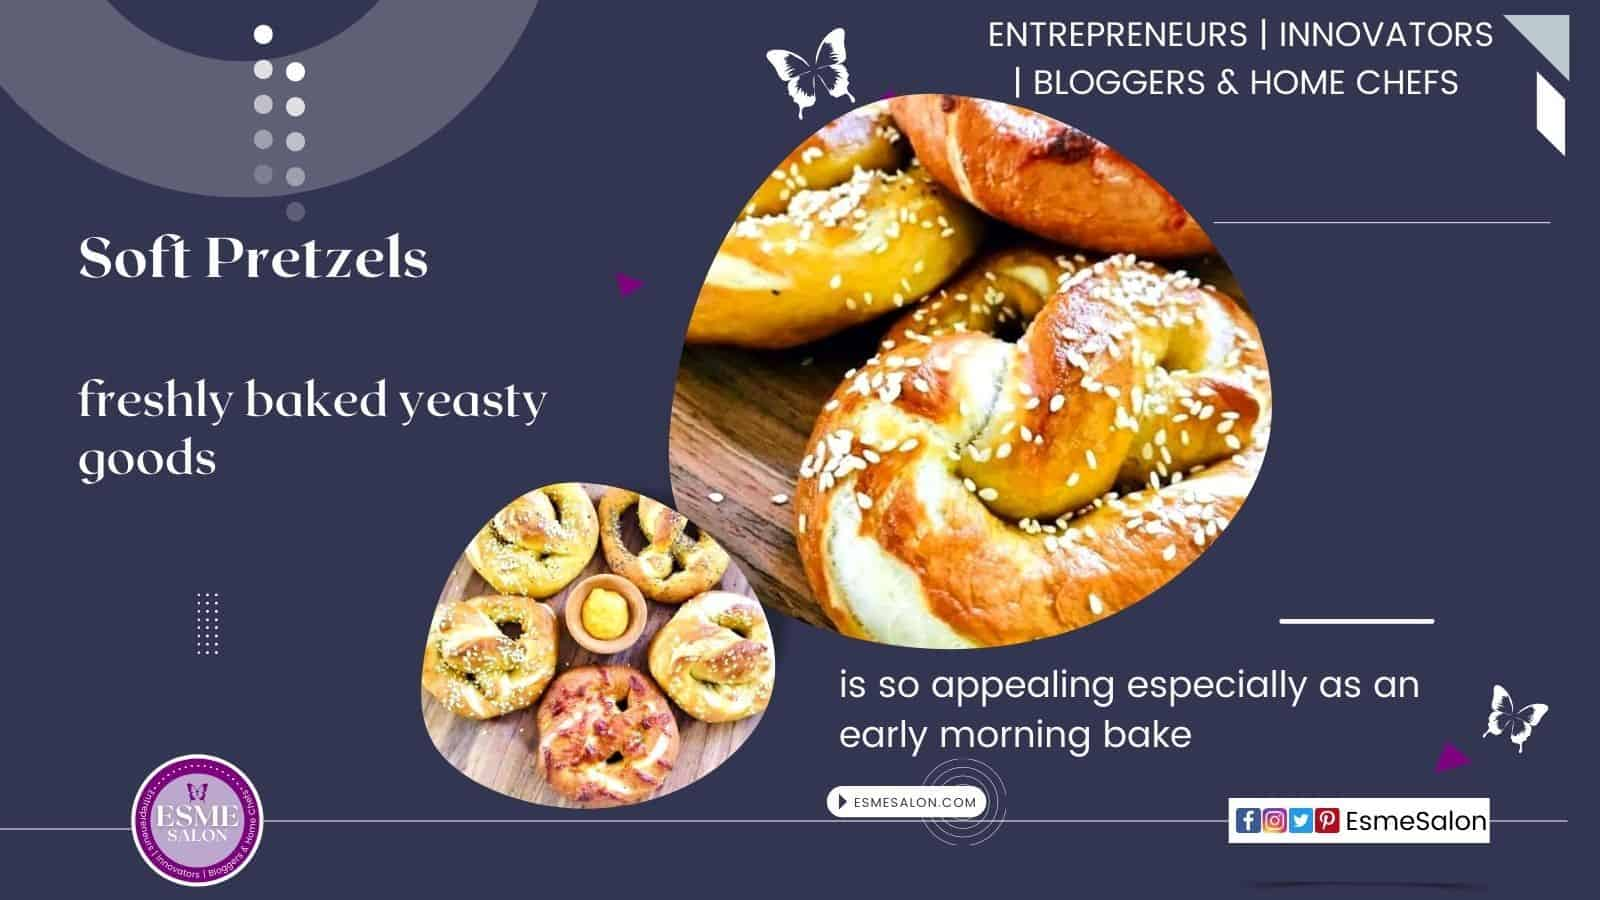 3 Soft pretzels with sesame seed on a wooden brown board and another one with 5 pretzels with a bowl of butter in the center